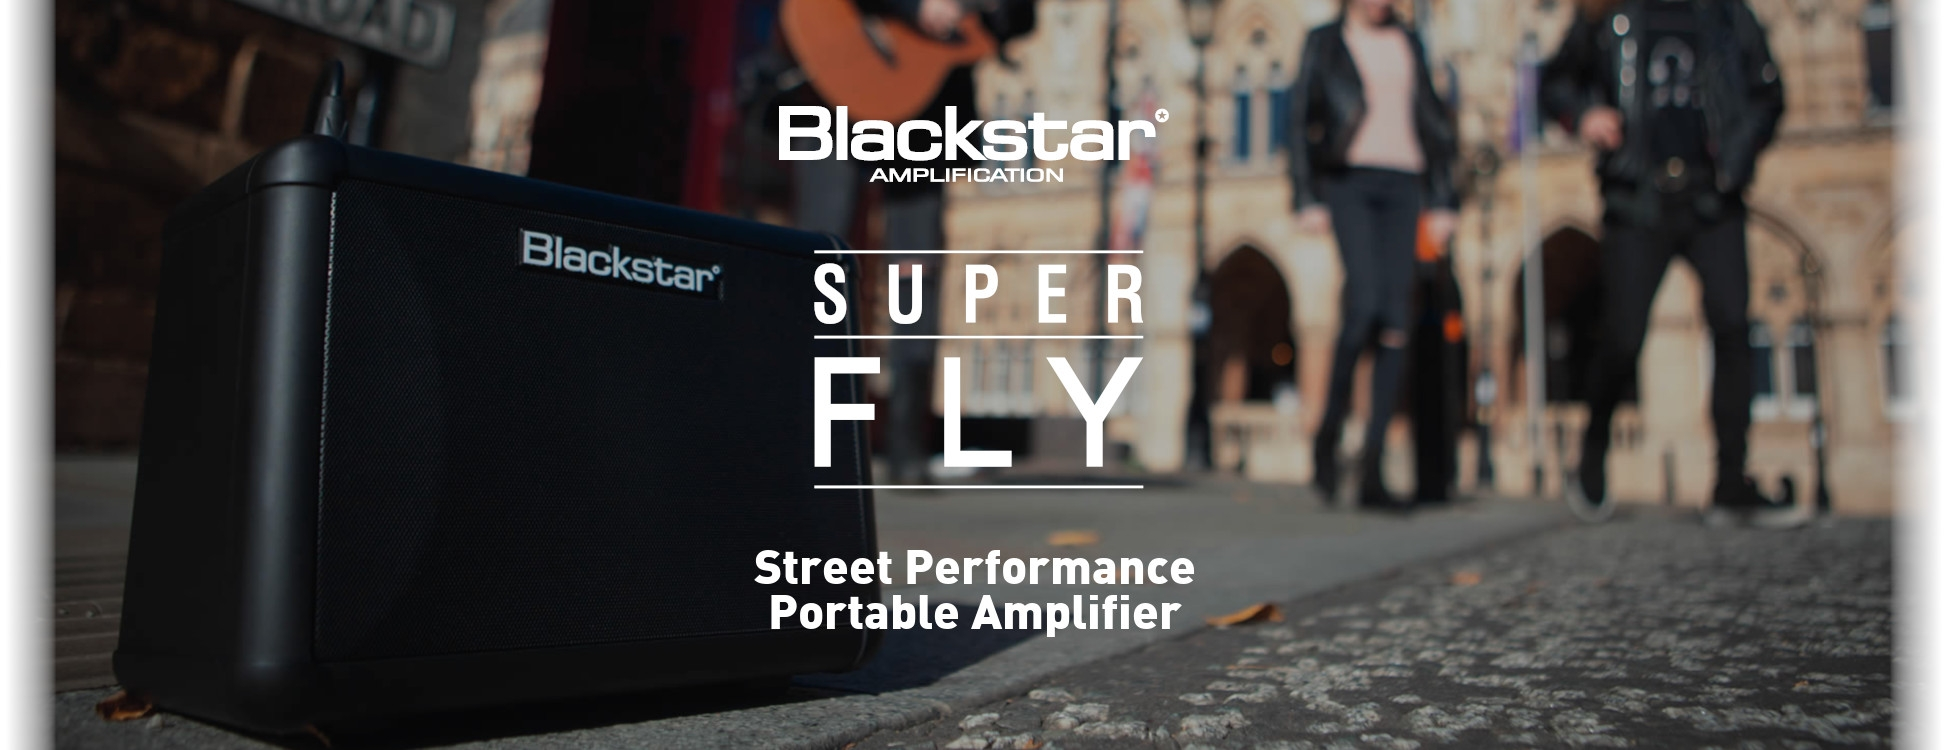 Blackstar Super Fly